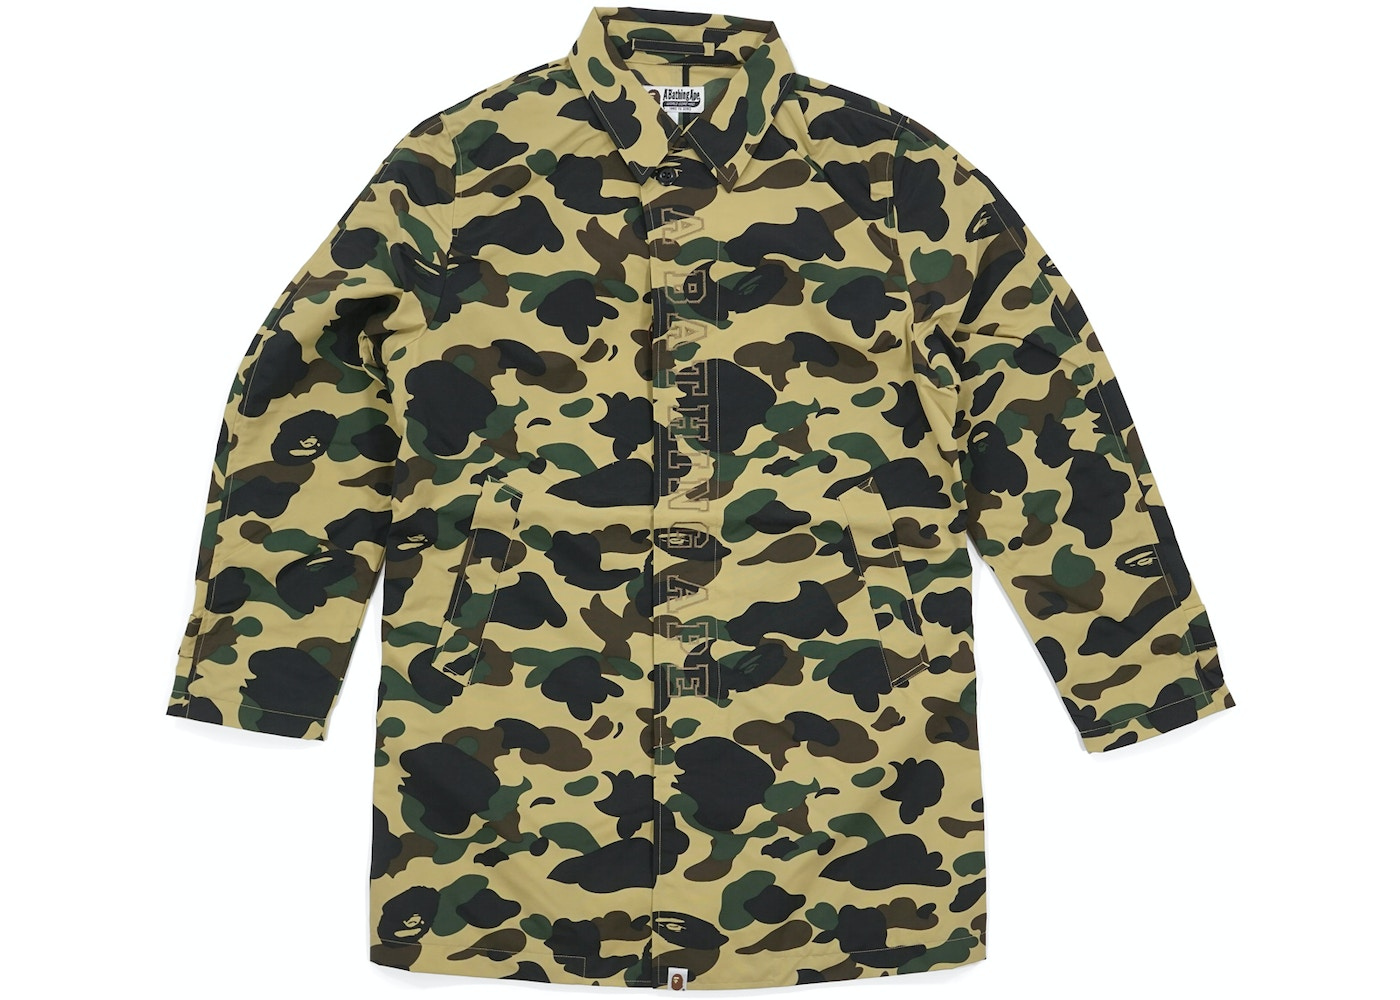 bape 1st camo rain trench coat yellow